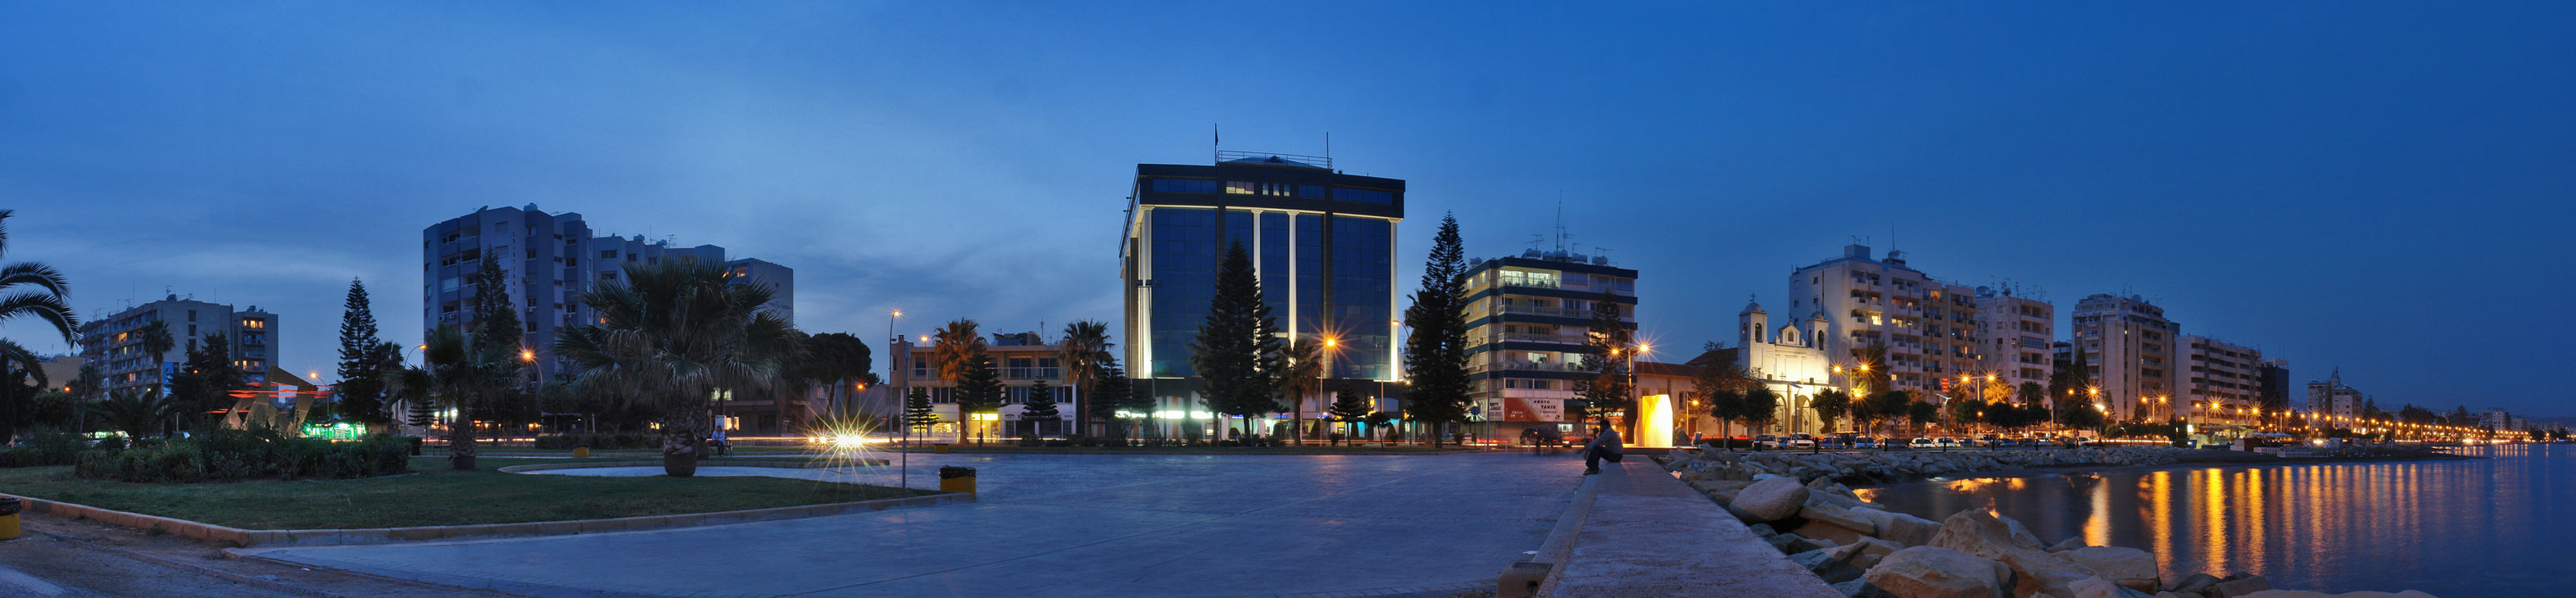 Limassol Cyprus  city pictures gallery : Limassol, Cyprus seafront at night. | Theomaria Estates LTD